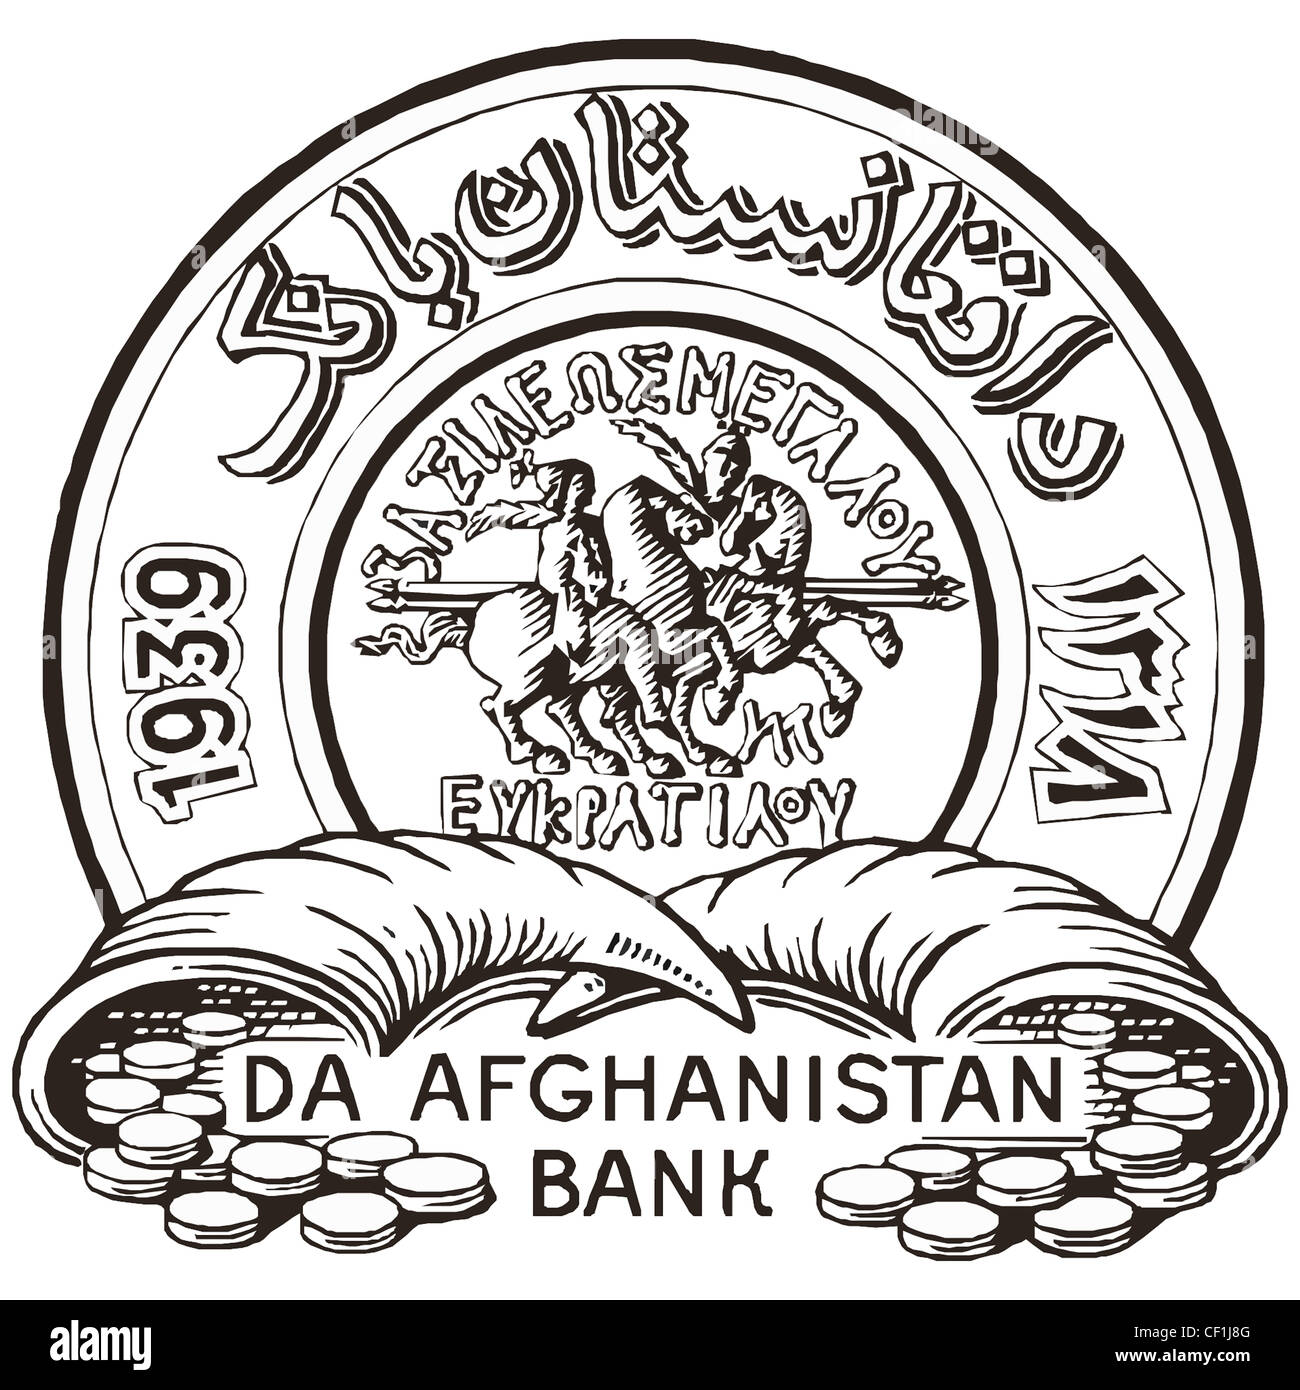 Logo of the Da Afghanistan Bank based in Kabul - Central bank of the Islamic Republic Afghanistan. - Stock Image